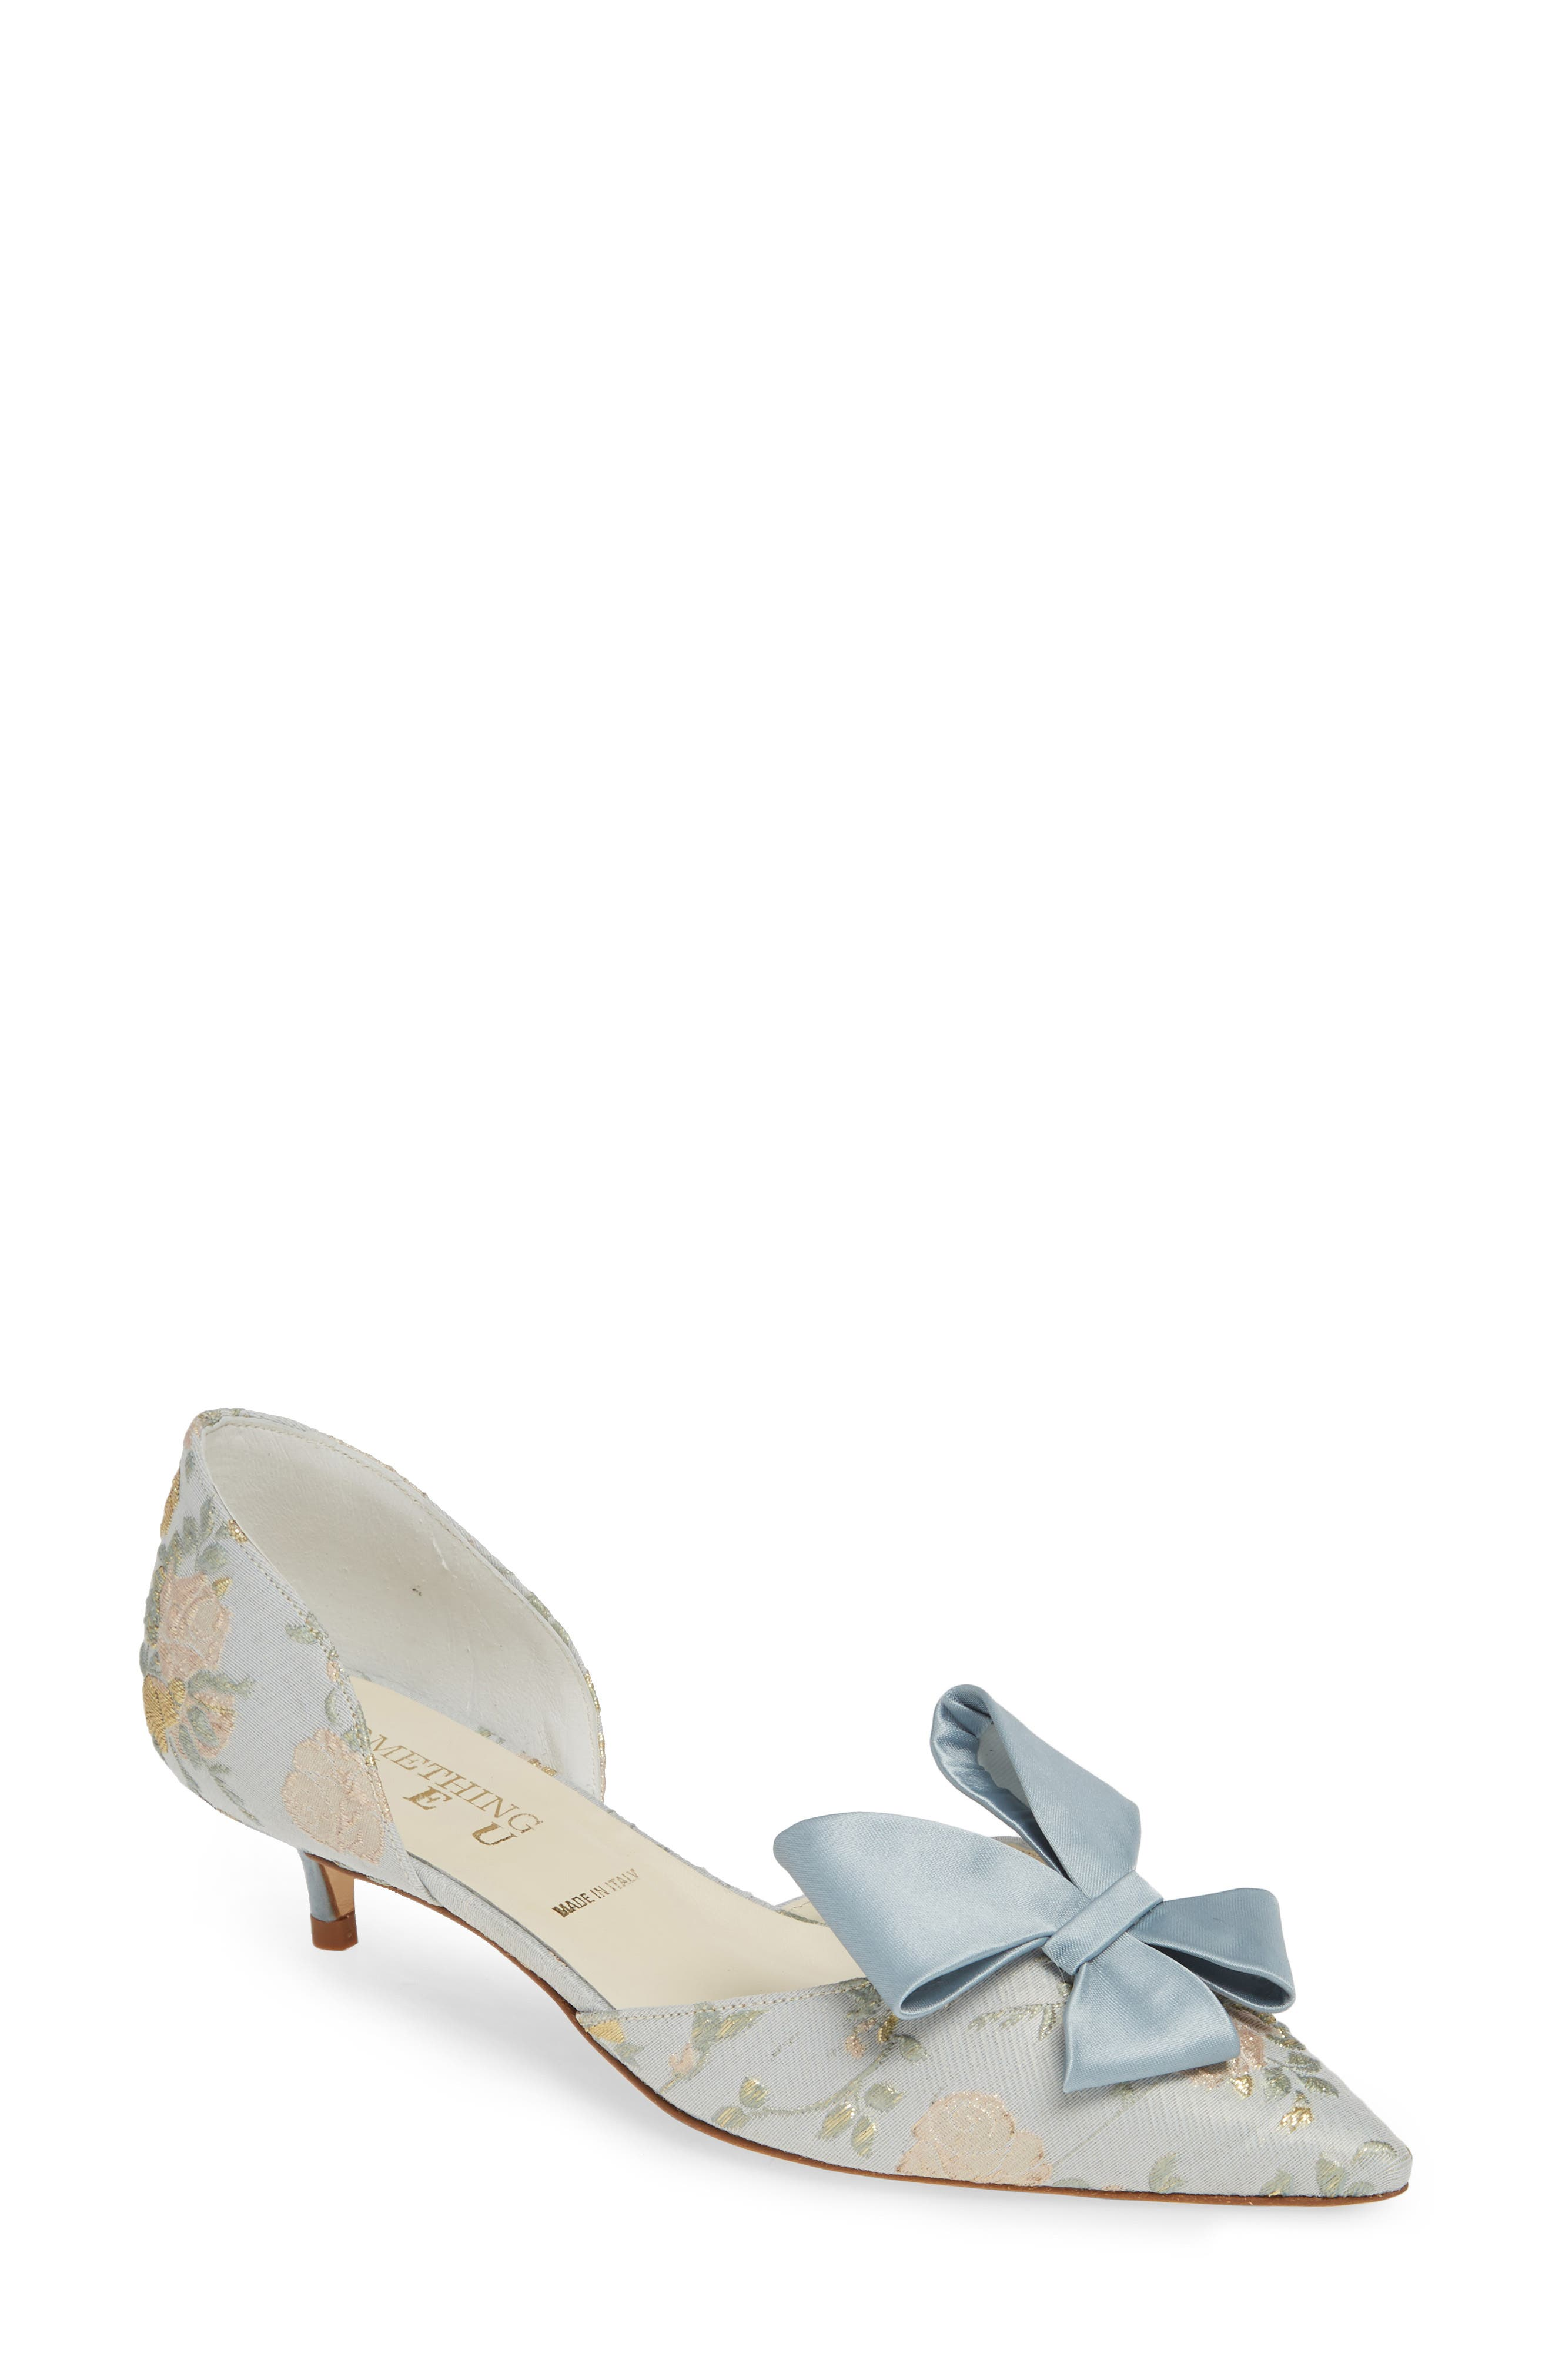 SOMETHING BLEU Cliff Bow d'Orsay Pump, Main, color, PEARL BLUE ROMANCE